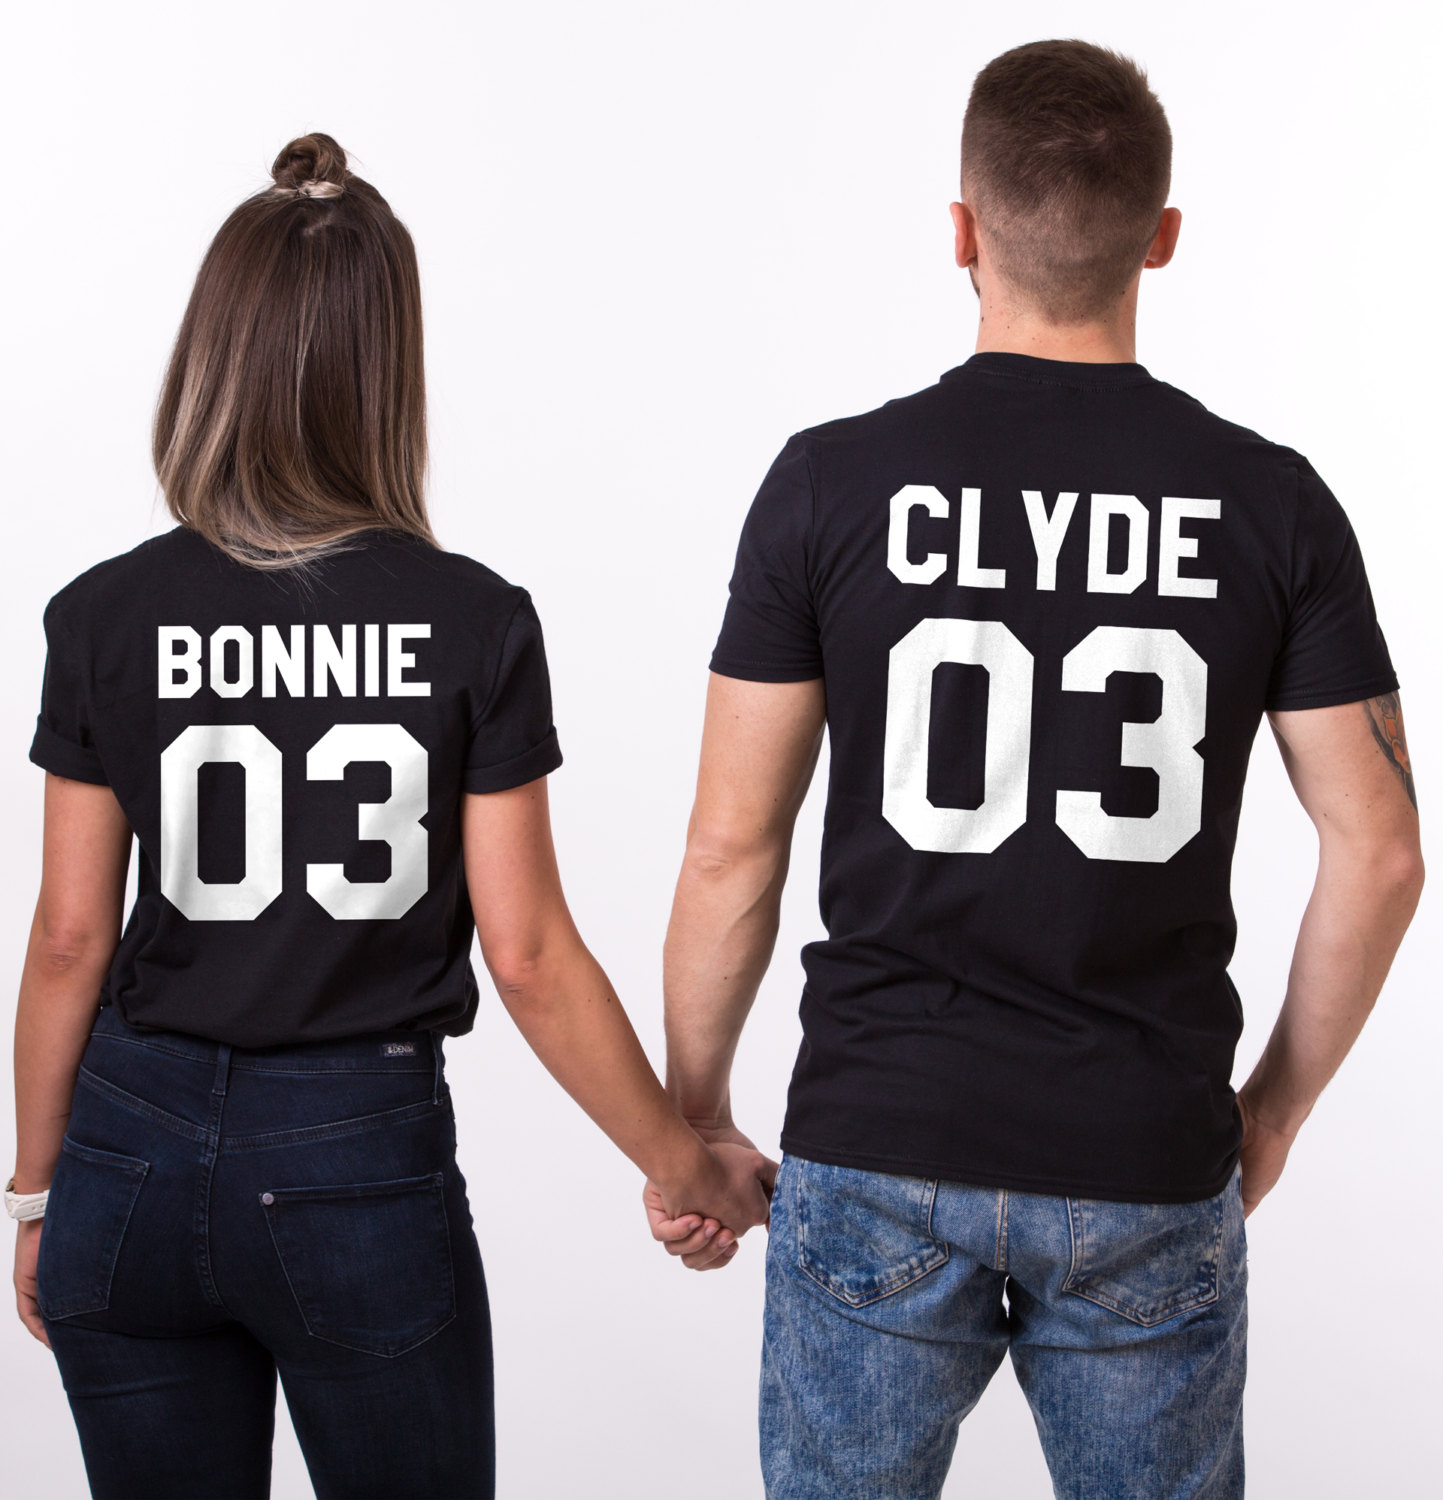 bonnie clyde 03 matching couples shirts unisex. Black Bedroom Furniture Sets. Home Design Ideas